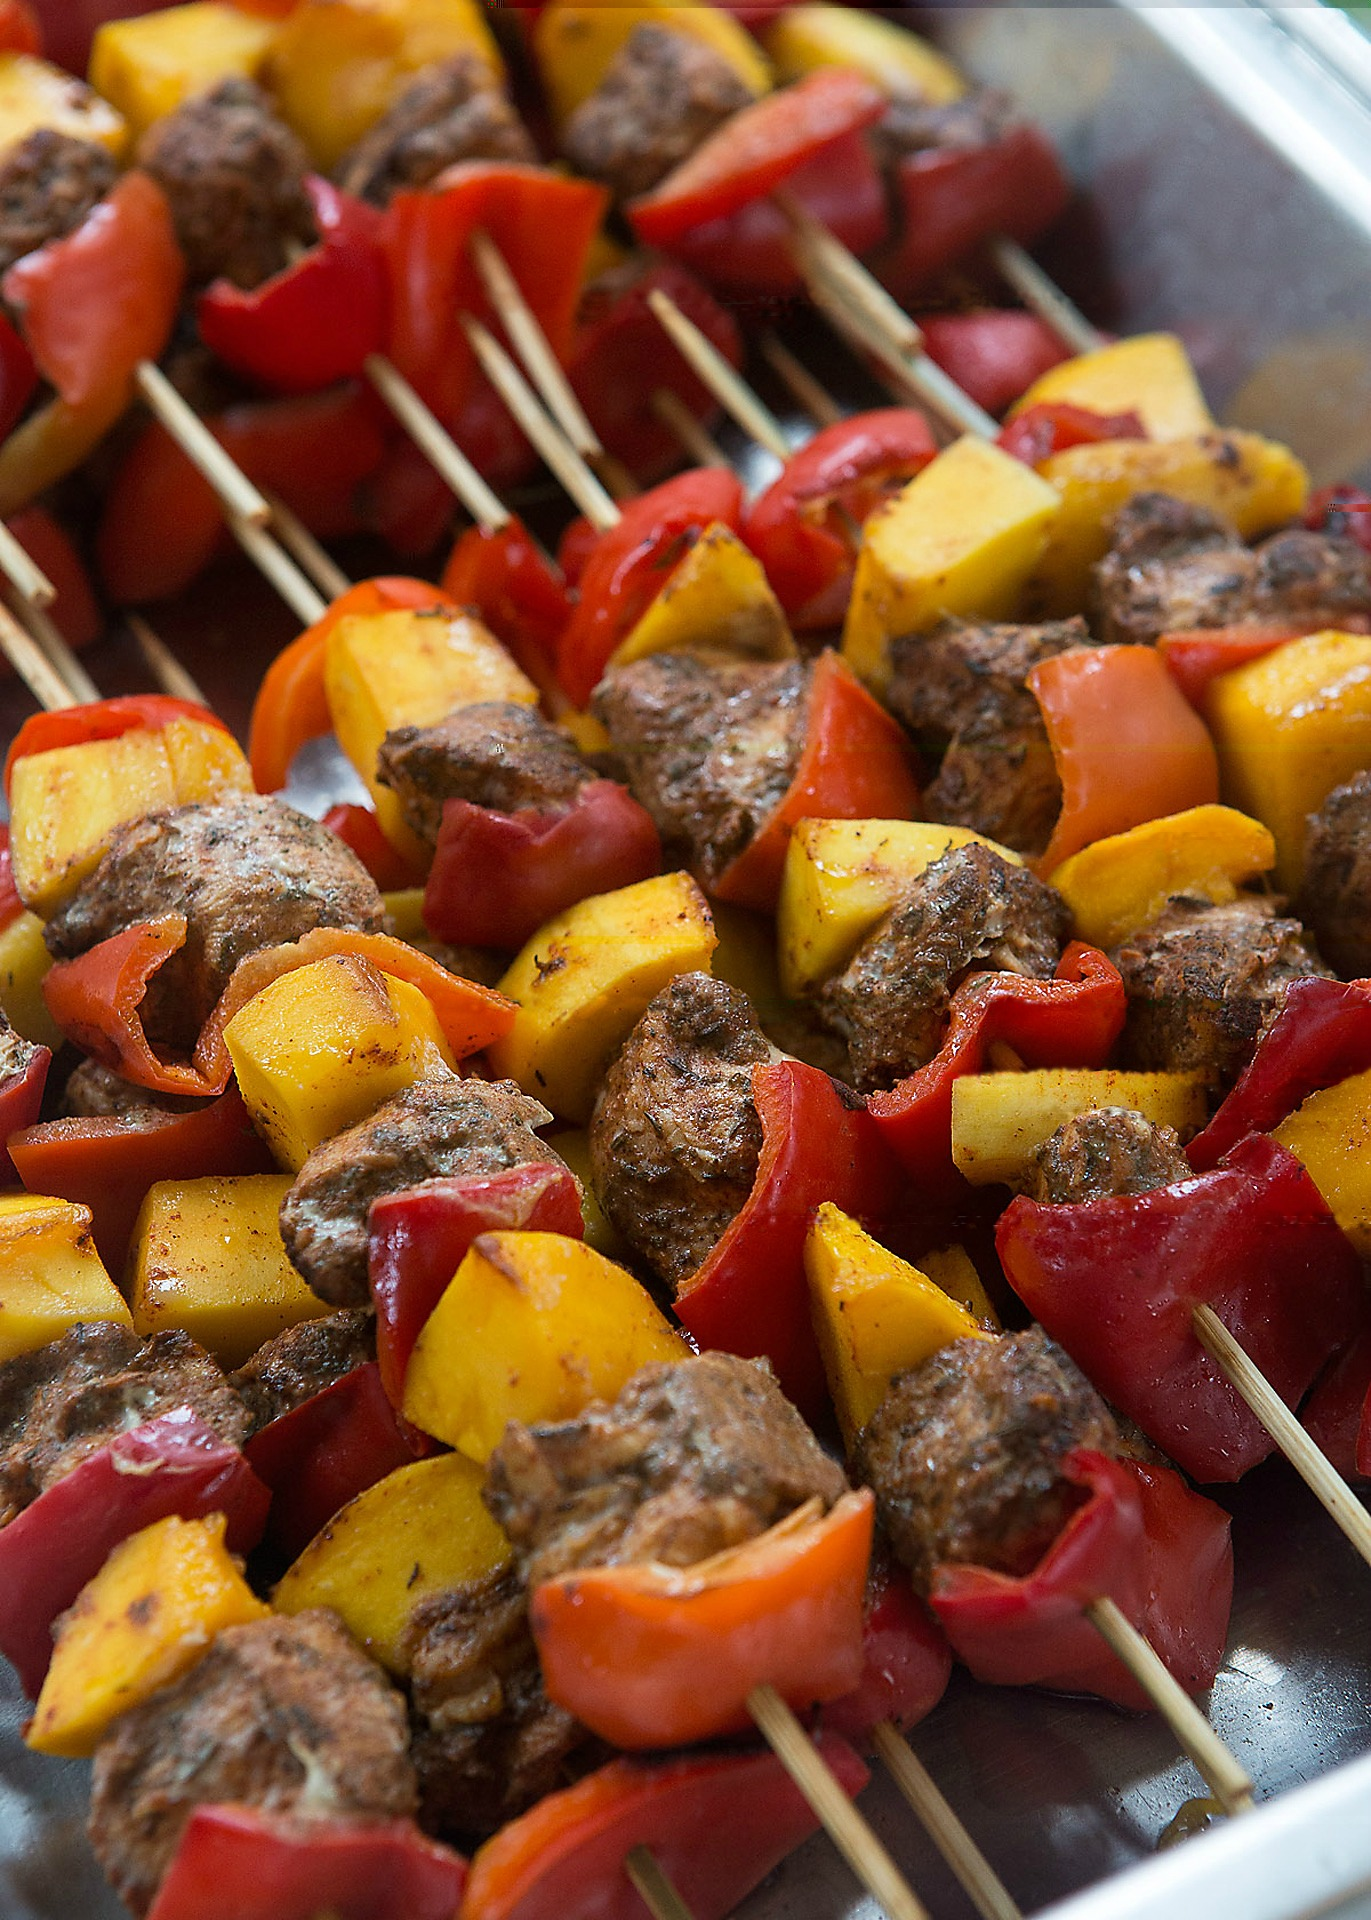 Steak Shish Kabobs